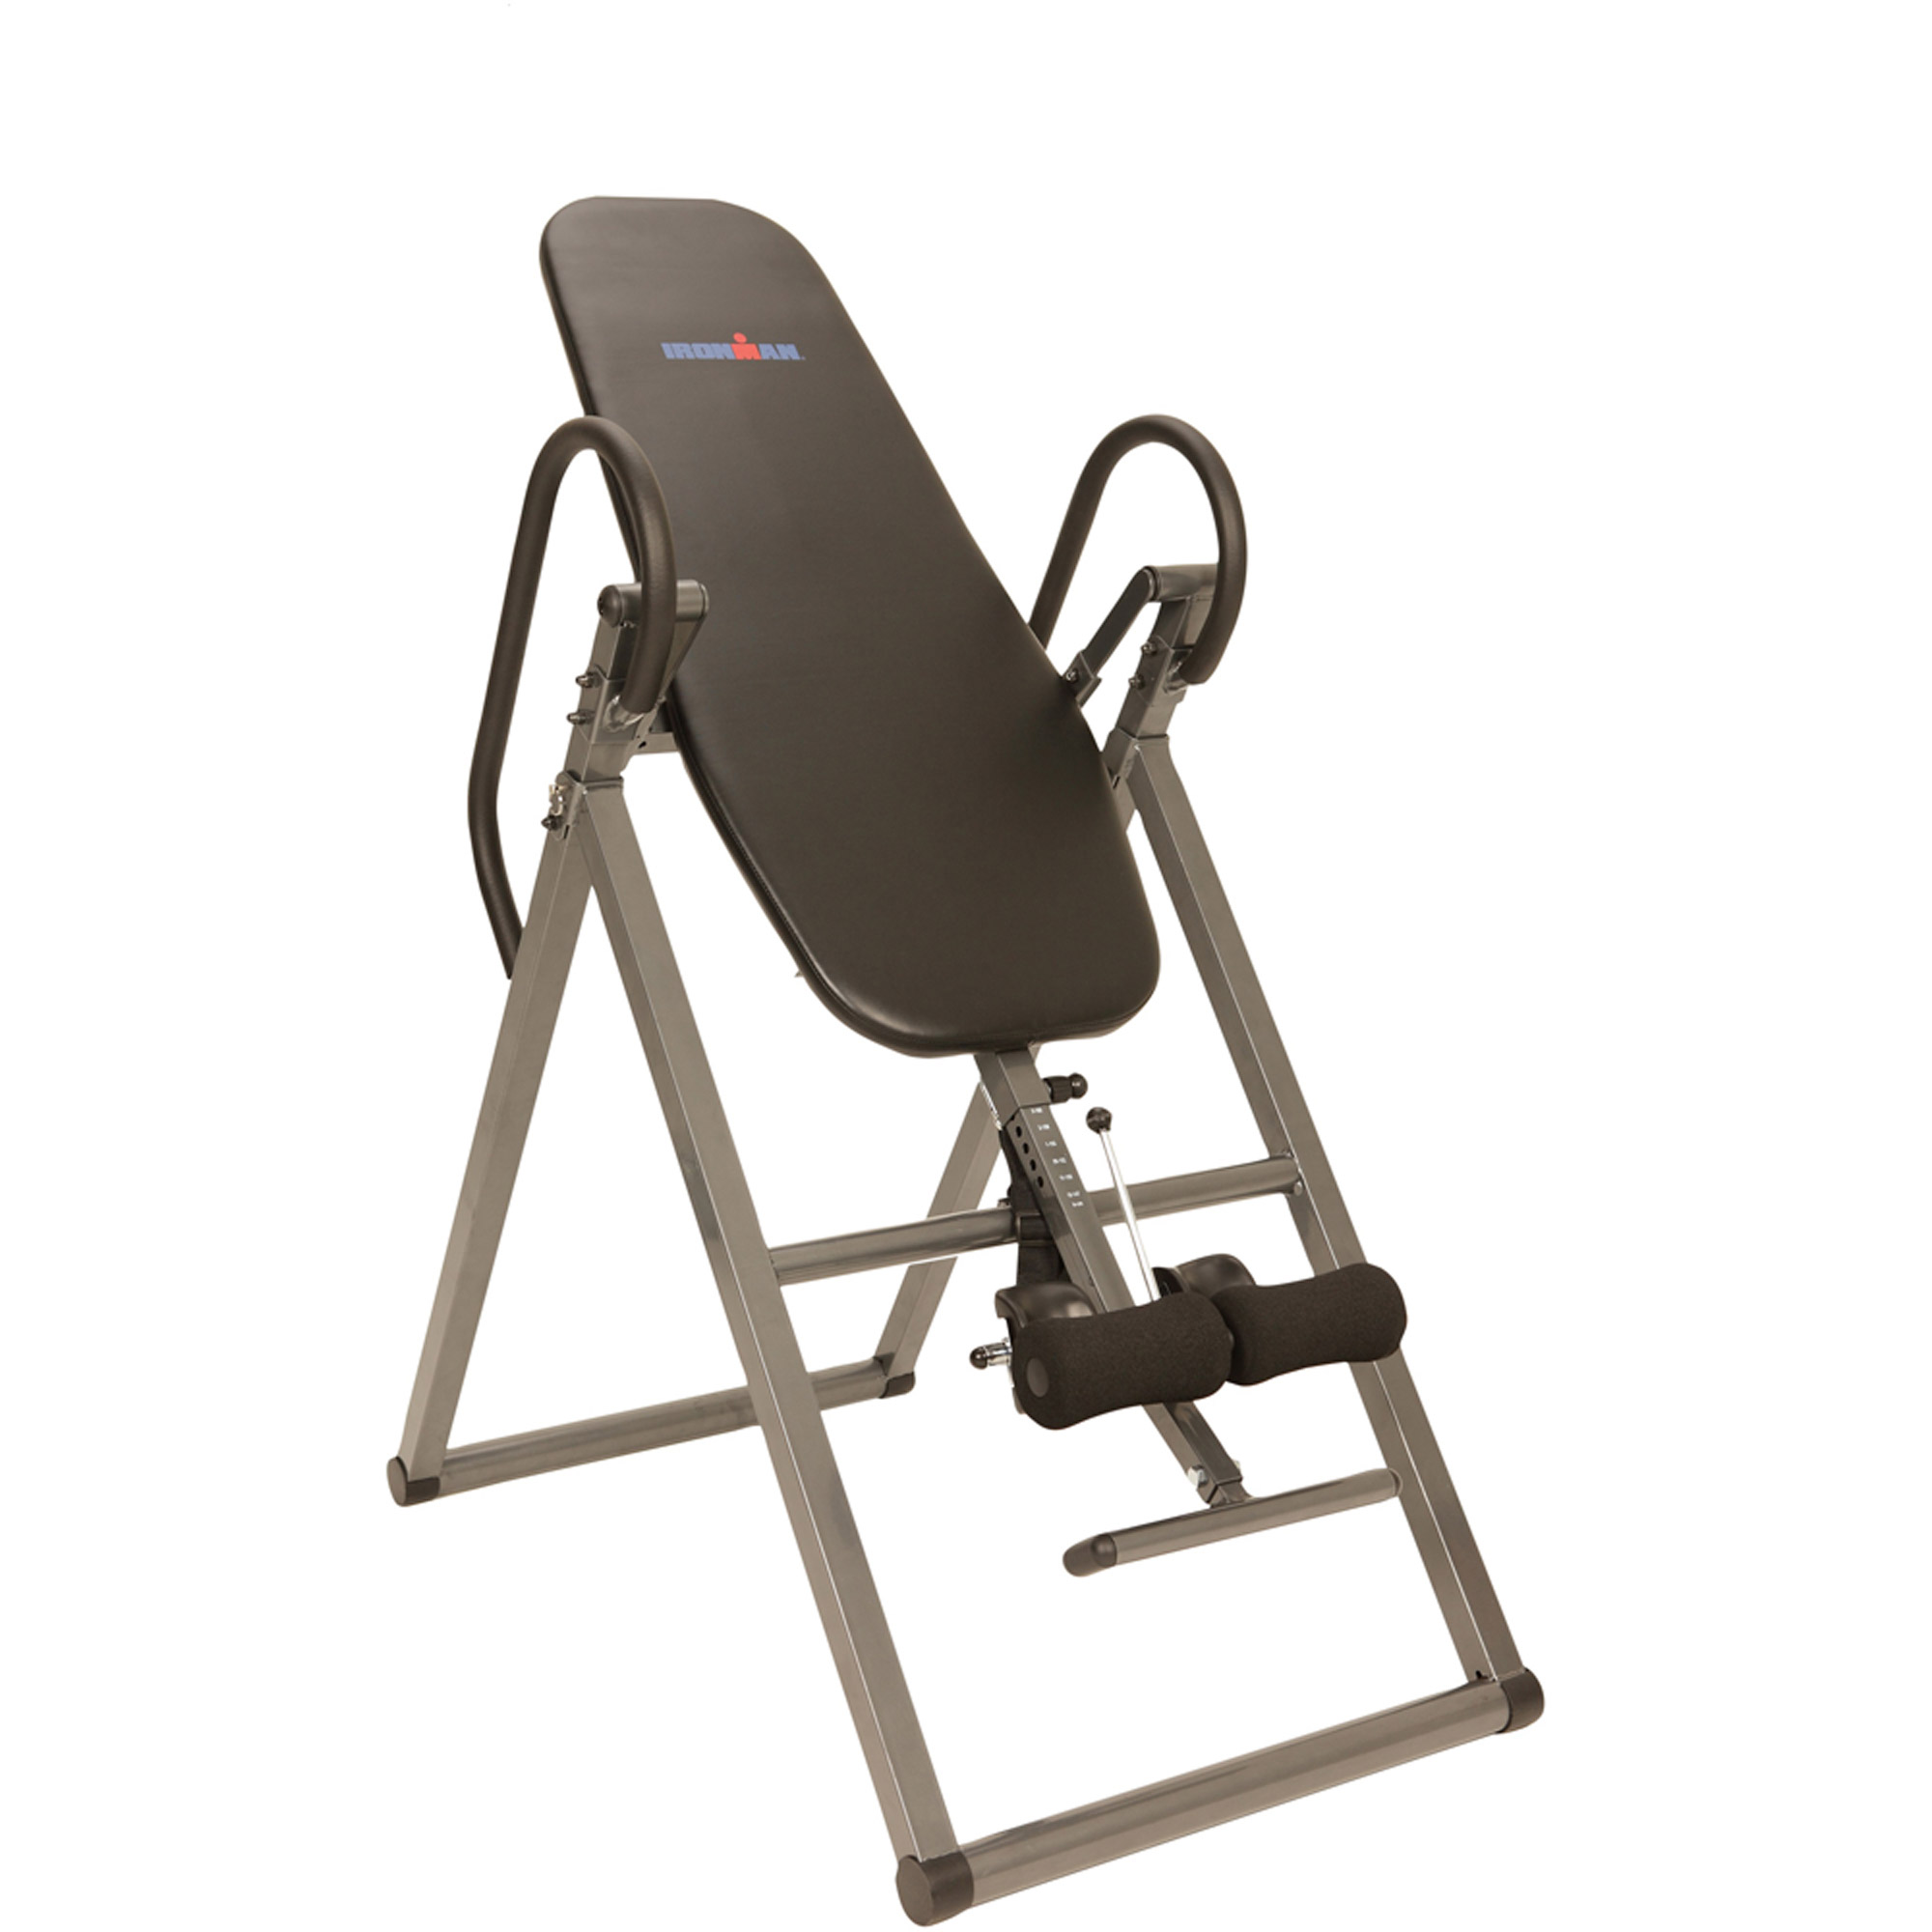 ironman gravity 750 inversion table walmart com rh walmart com ironman inversion table 5502 ironman inversion table replacement parts